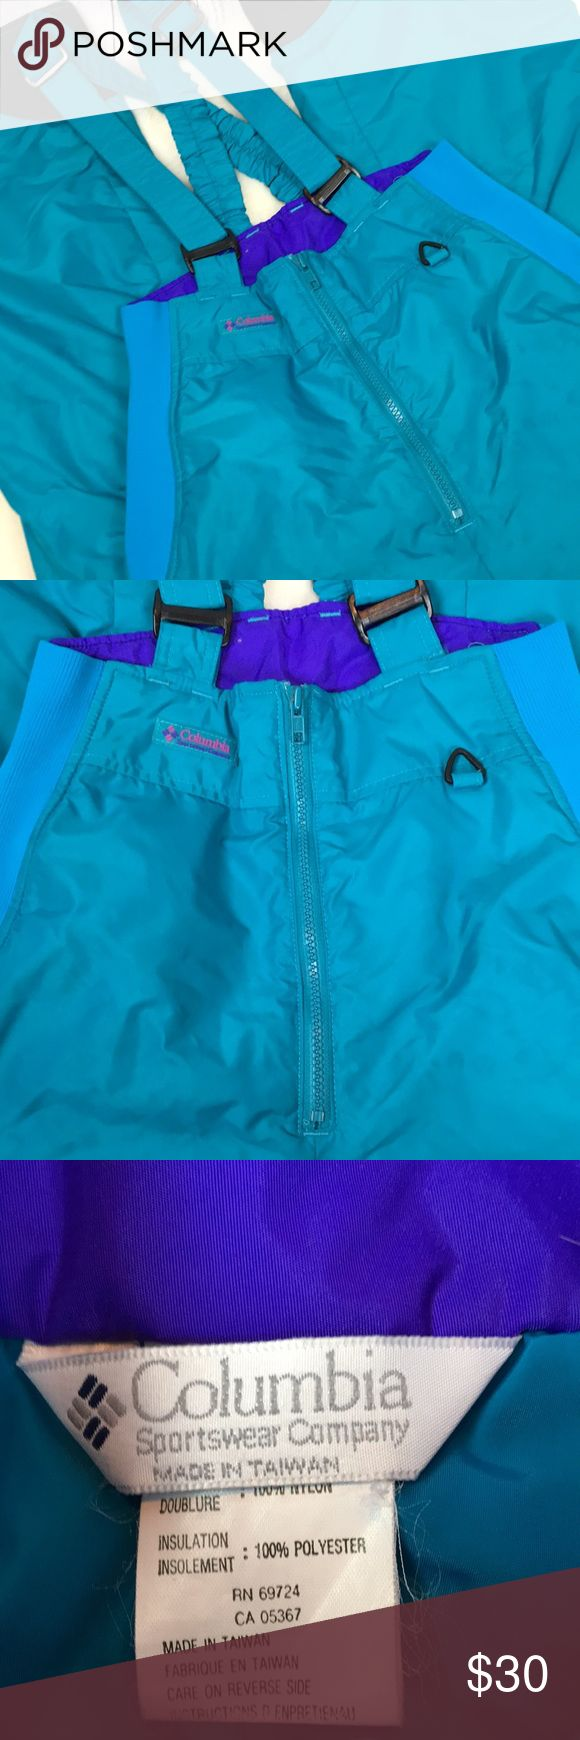 "❄️ Columbia VINTAGE Teal Neon Pop Snow Bibs Sz M Get ready to hit the slopes in RETRO style!!! Awesome Columbia WARM snow overalls ... perfect for the upcoming season. These are more TEAL then I can get the pictures to show. Totally RAD!!!! Adjustable straps. Women's Size Medium. Inseam is 30"". Zippered waist with elastic sides. In her good condition from a smoke free home!! Columbia Pants"